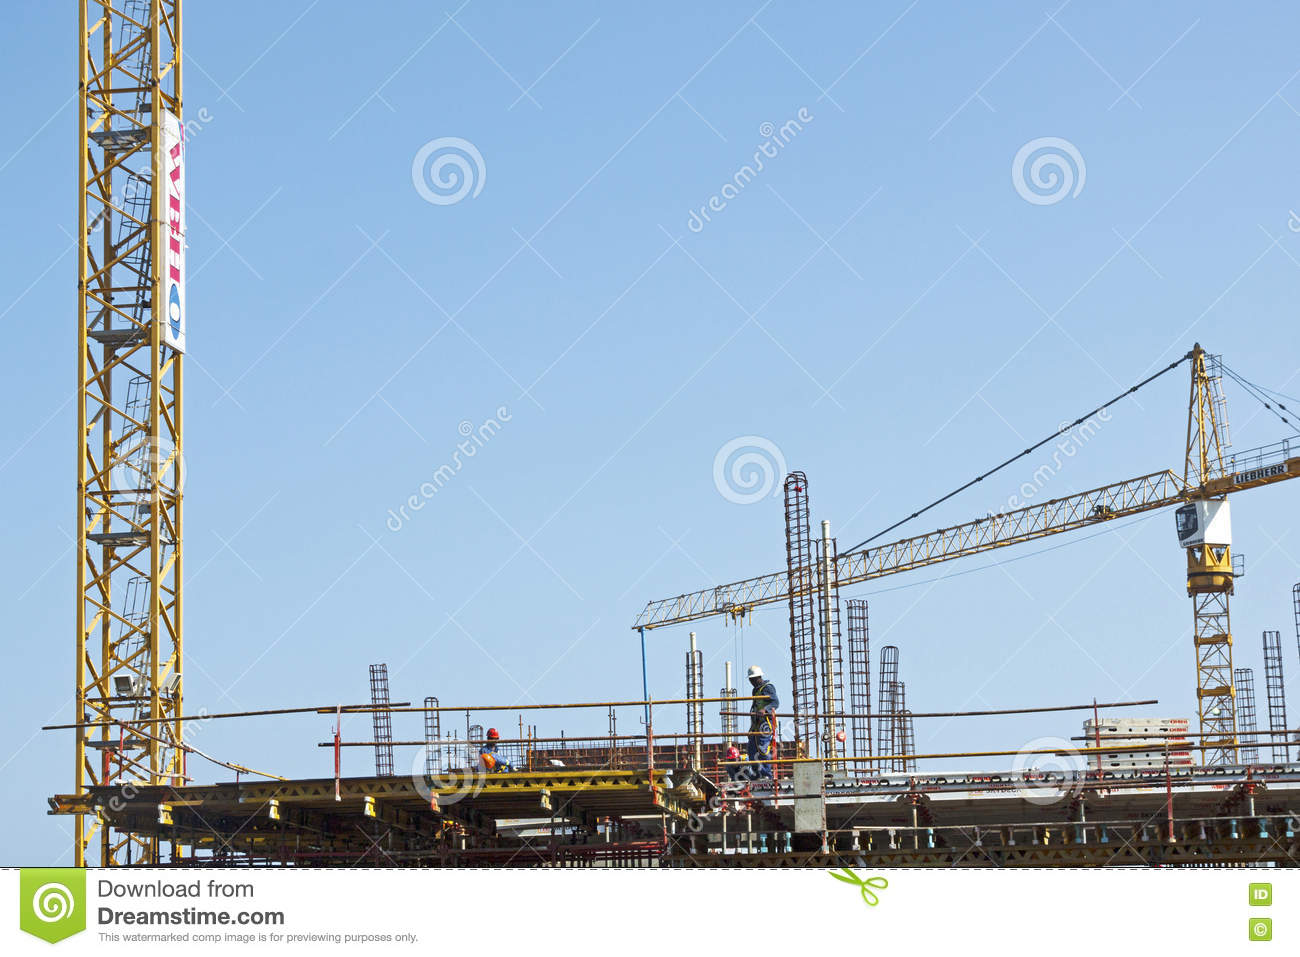 High lift Crane and Workers Woking on Construction Site